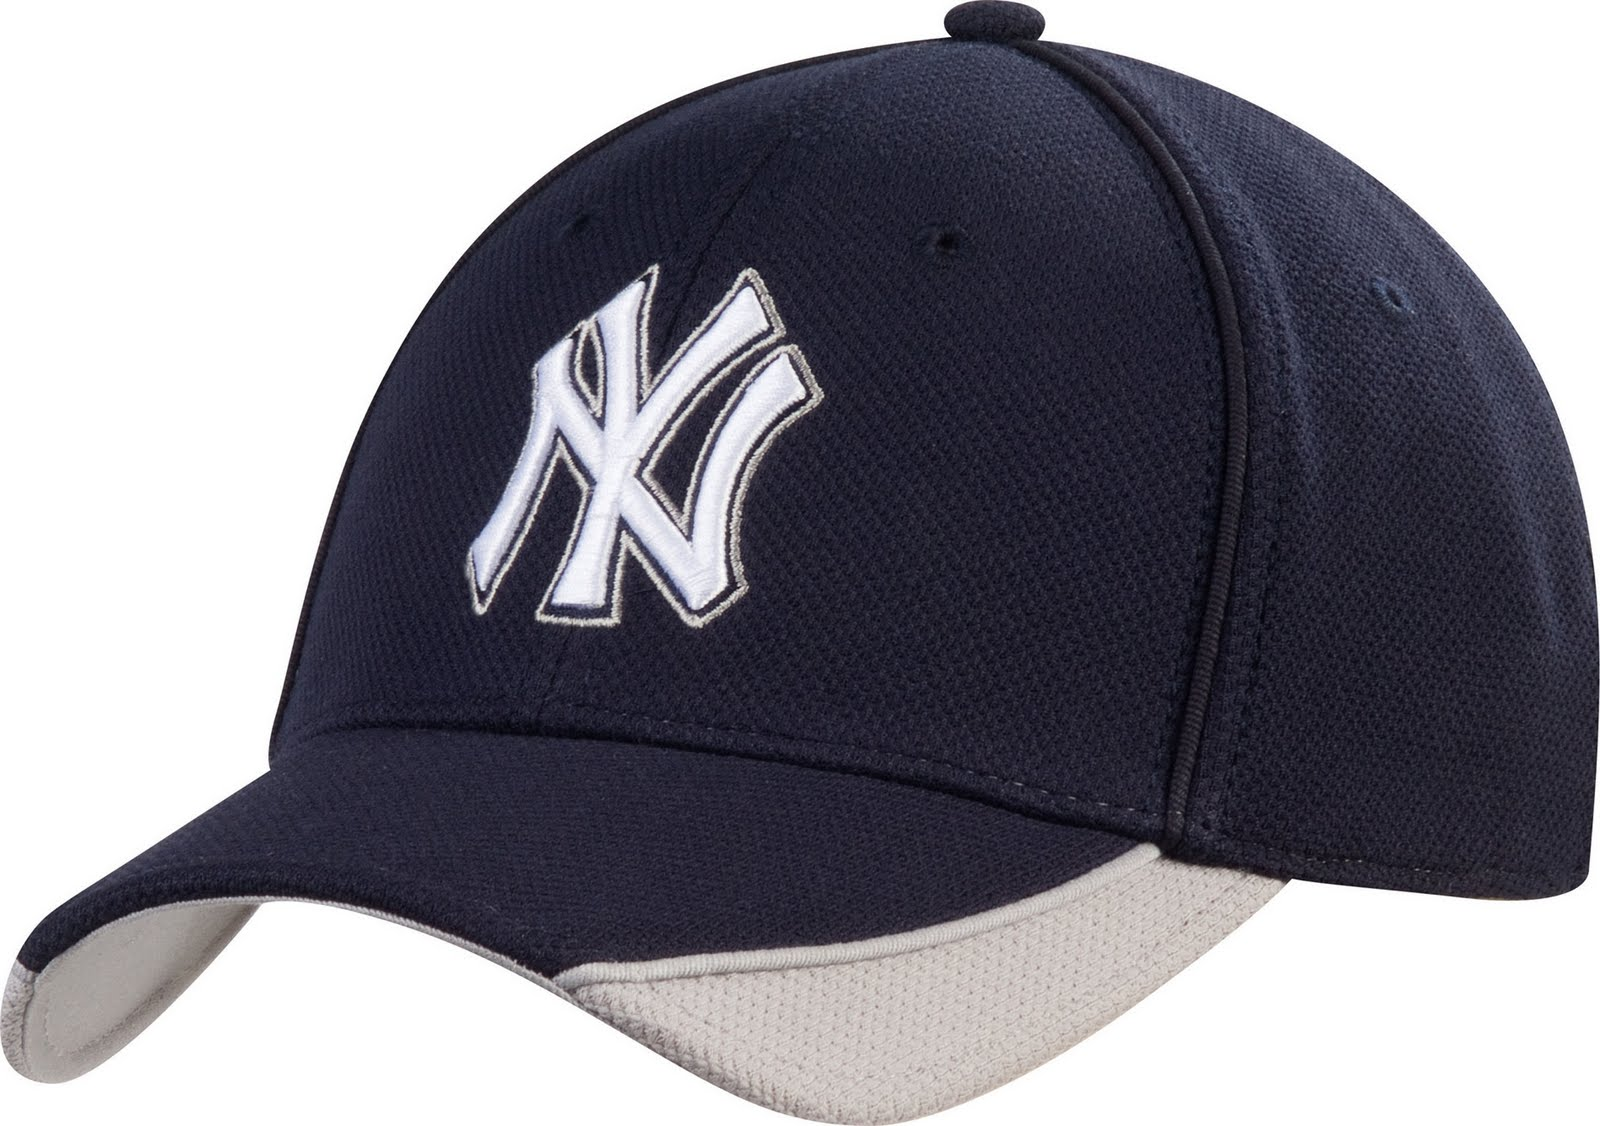 2010 new york yankees batting practice cap